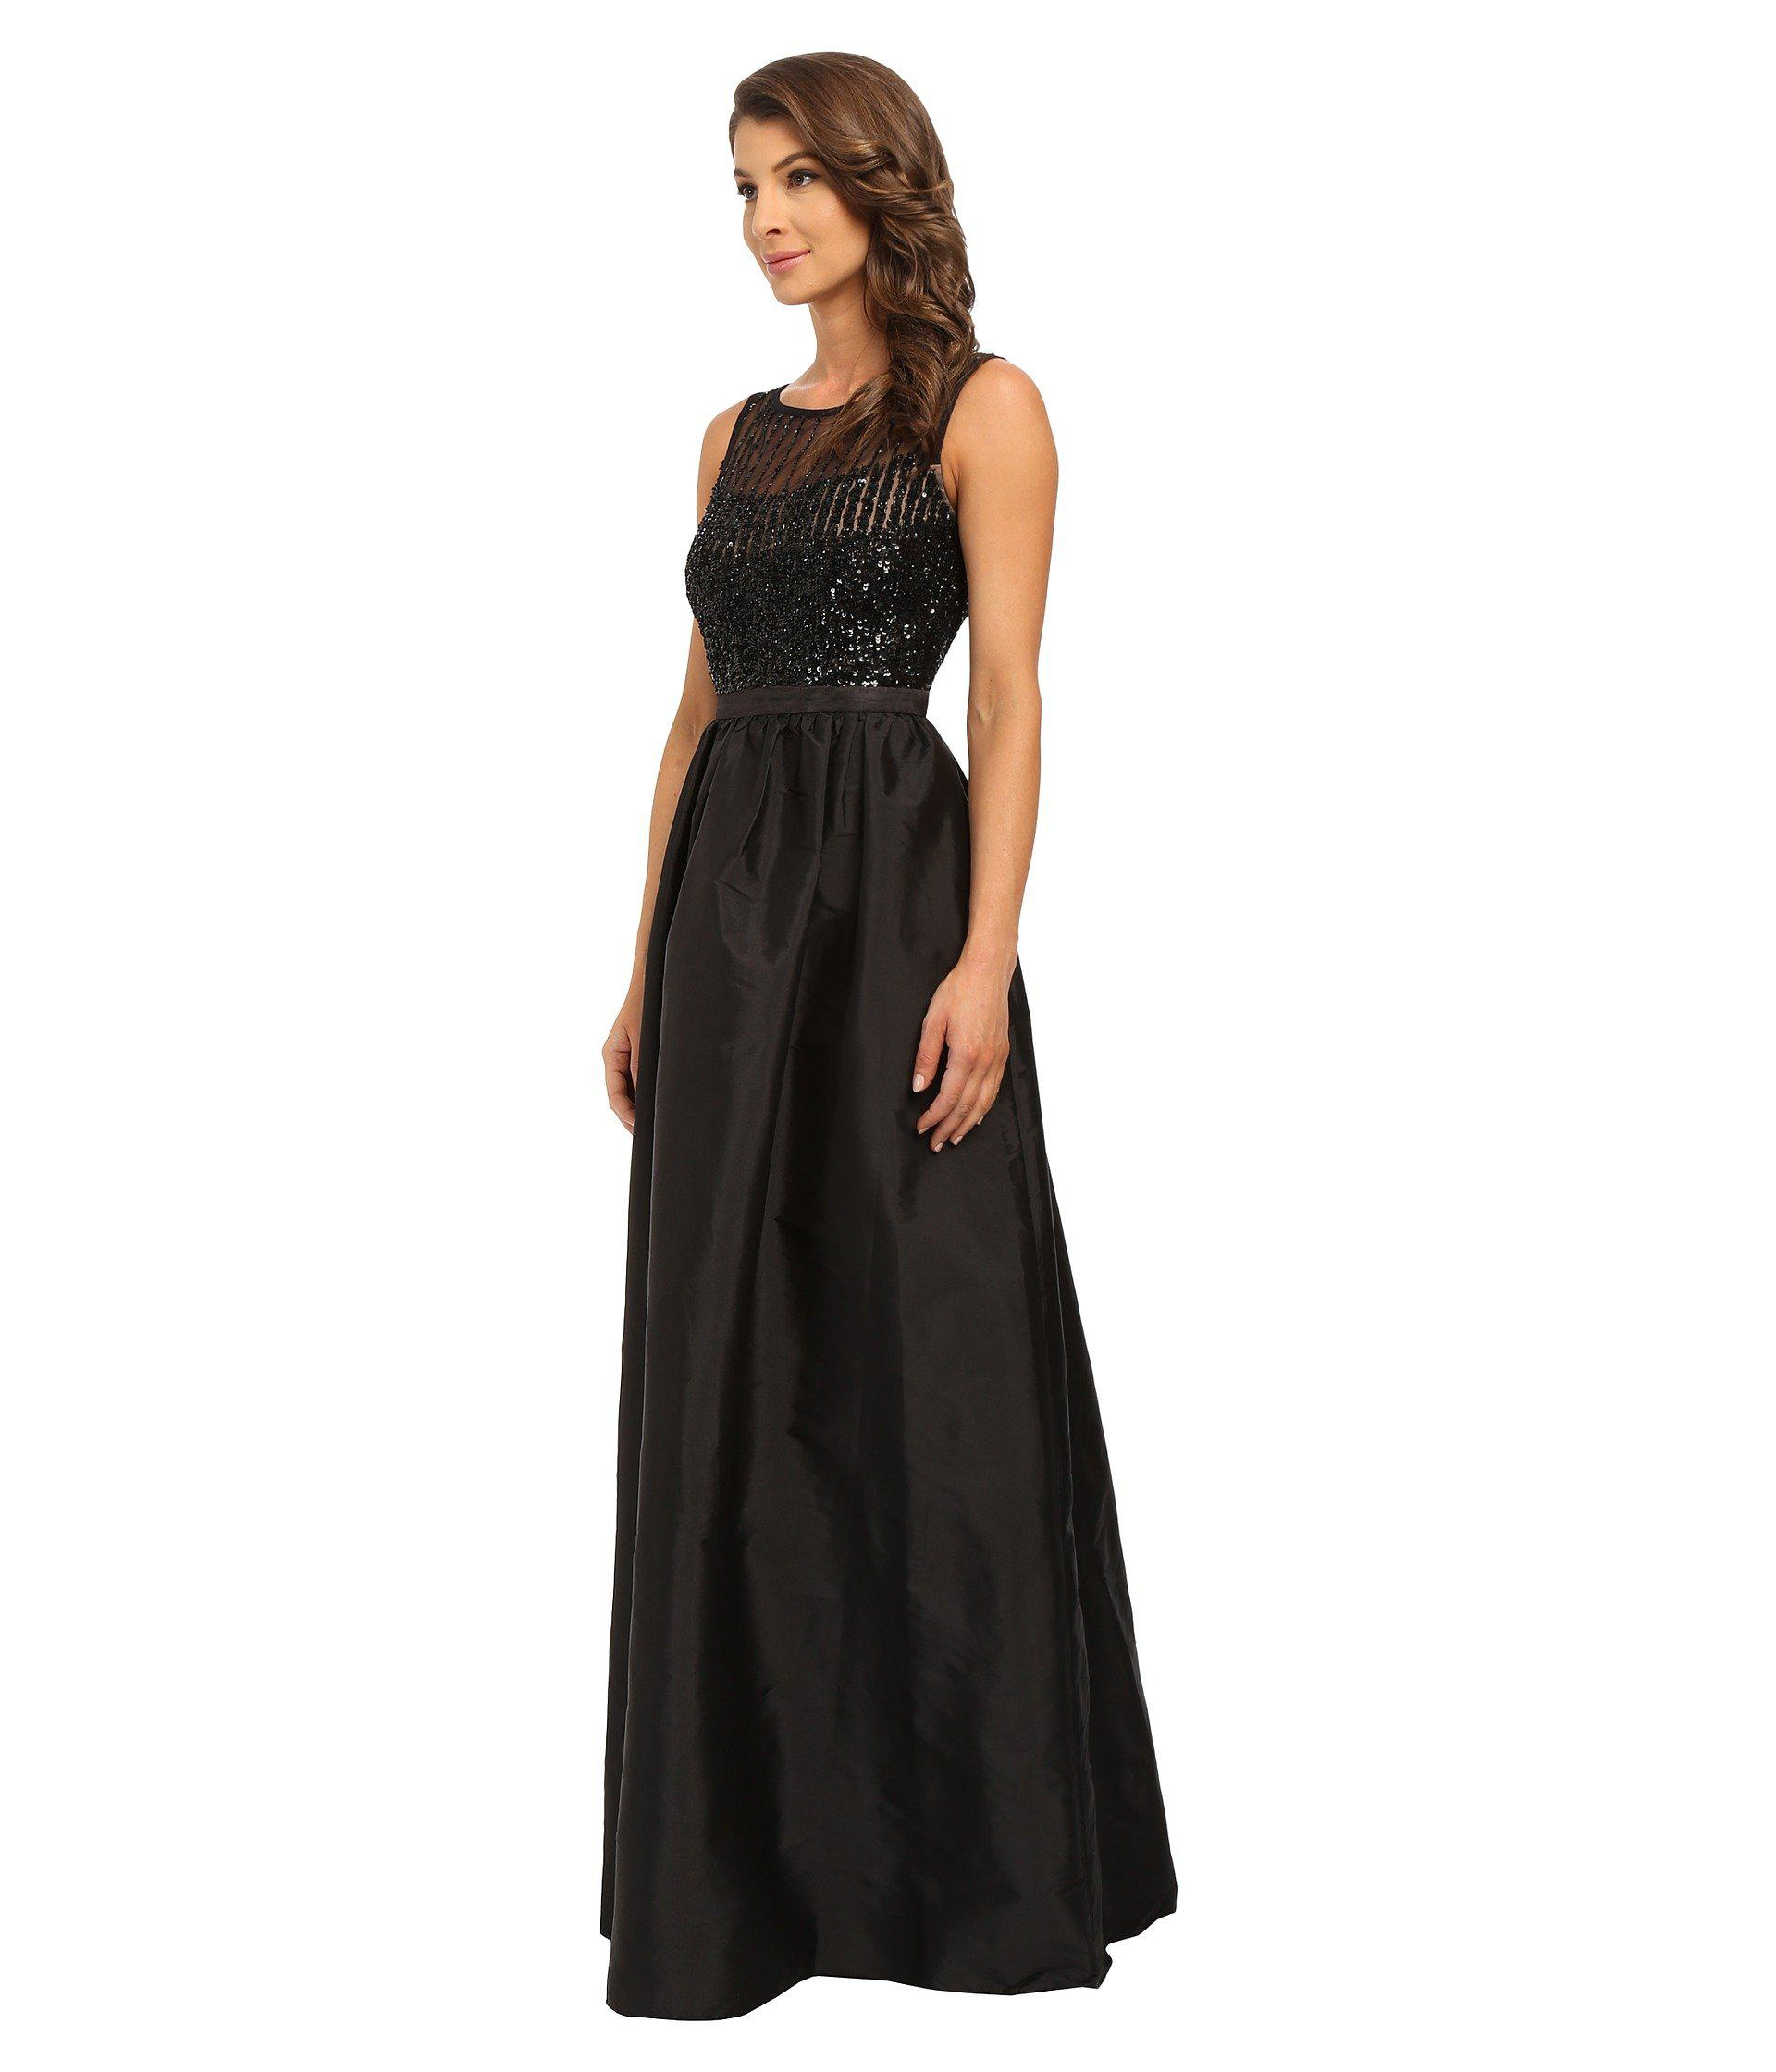 3af938d2335 Adrianna Papell Sleeveless Beaded Bodice Taffeta Ball Gown in Black ...